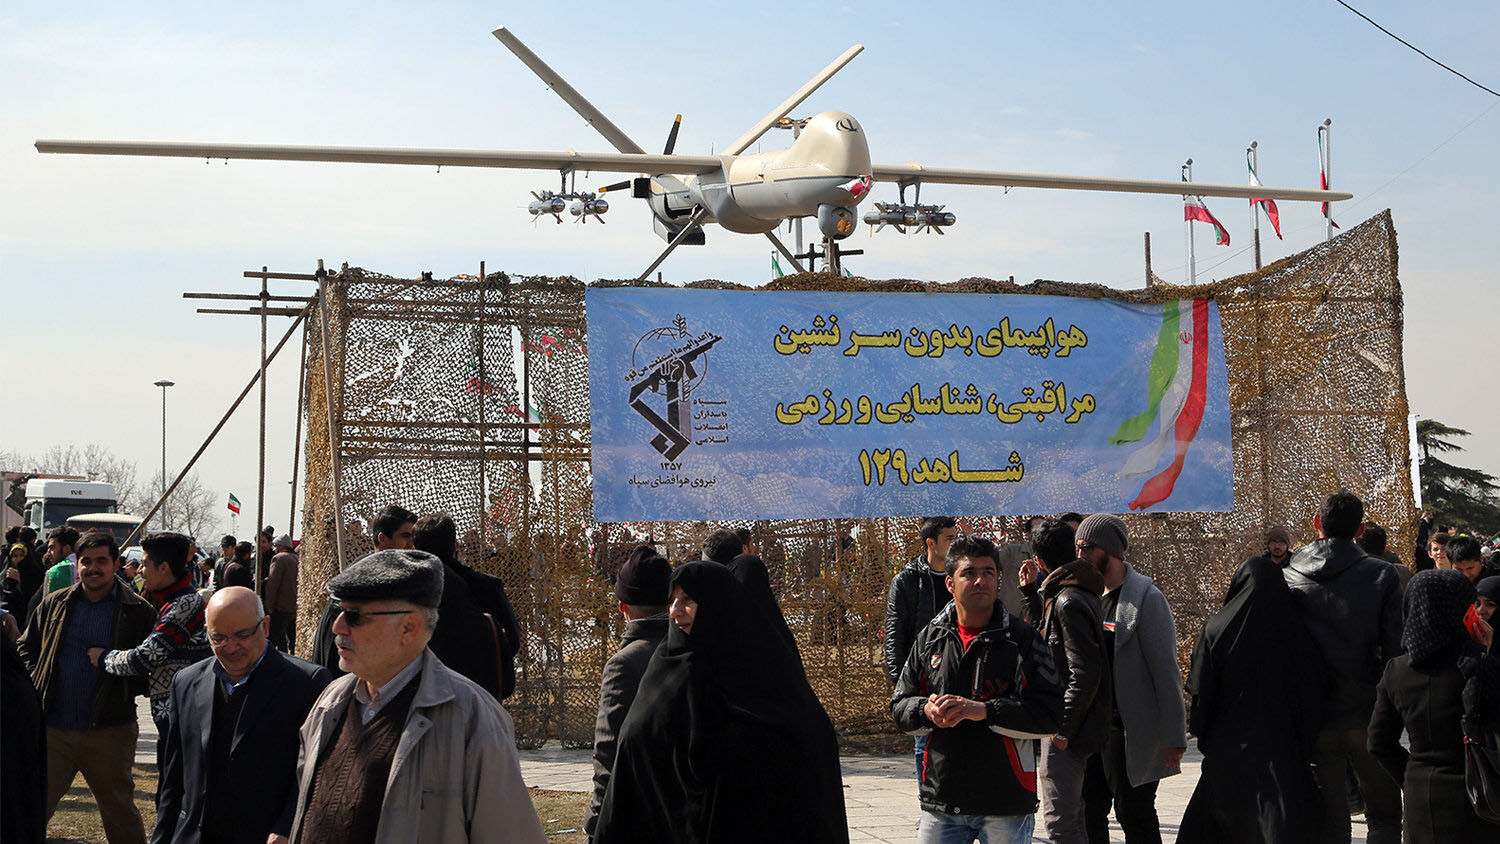 New%20 %20190318 iran%20drone gettyimages 509522112%20copy.jpg